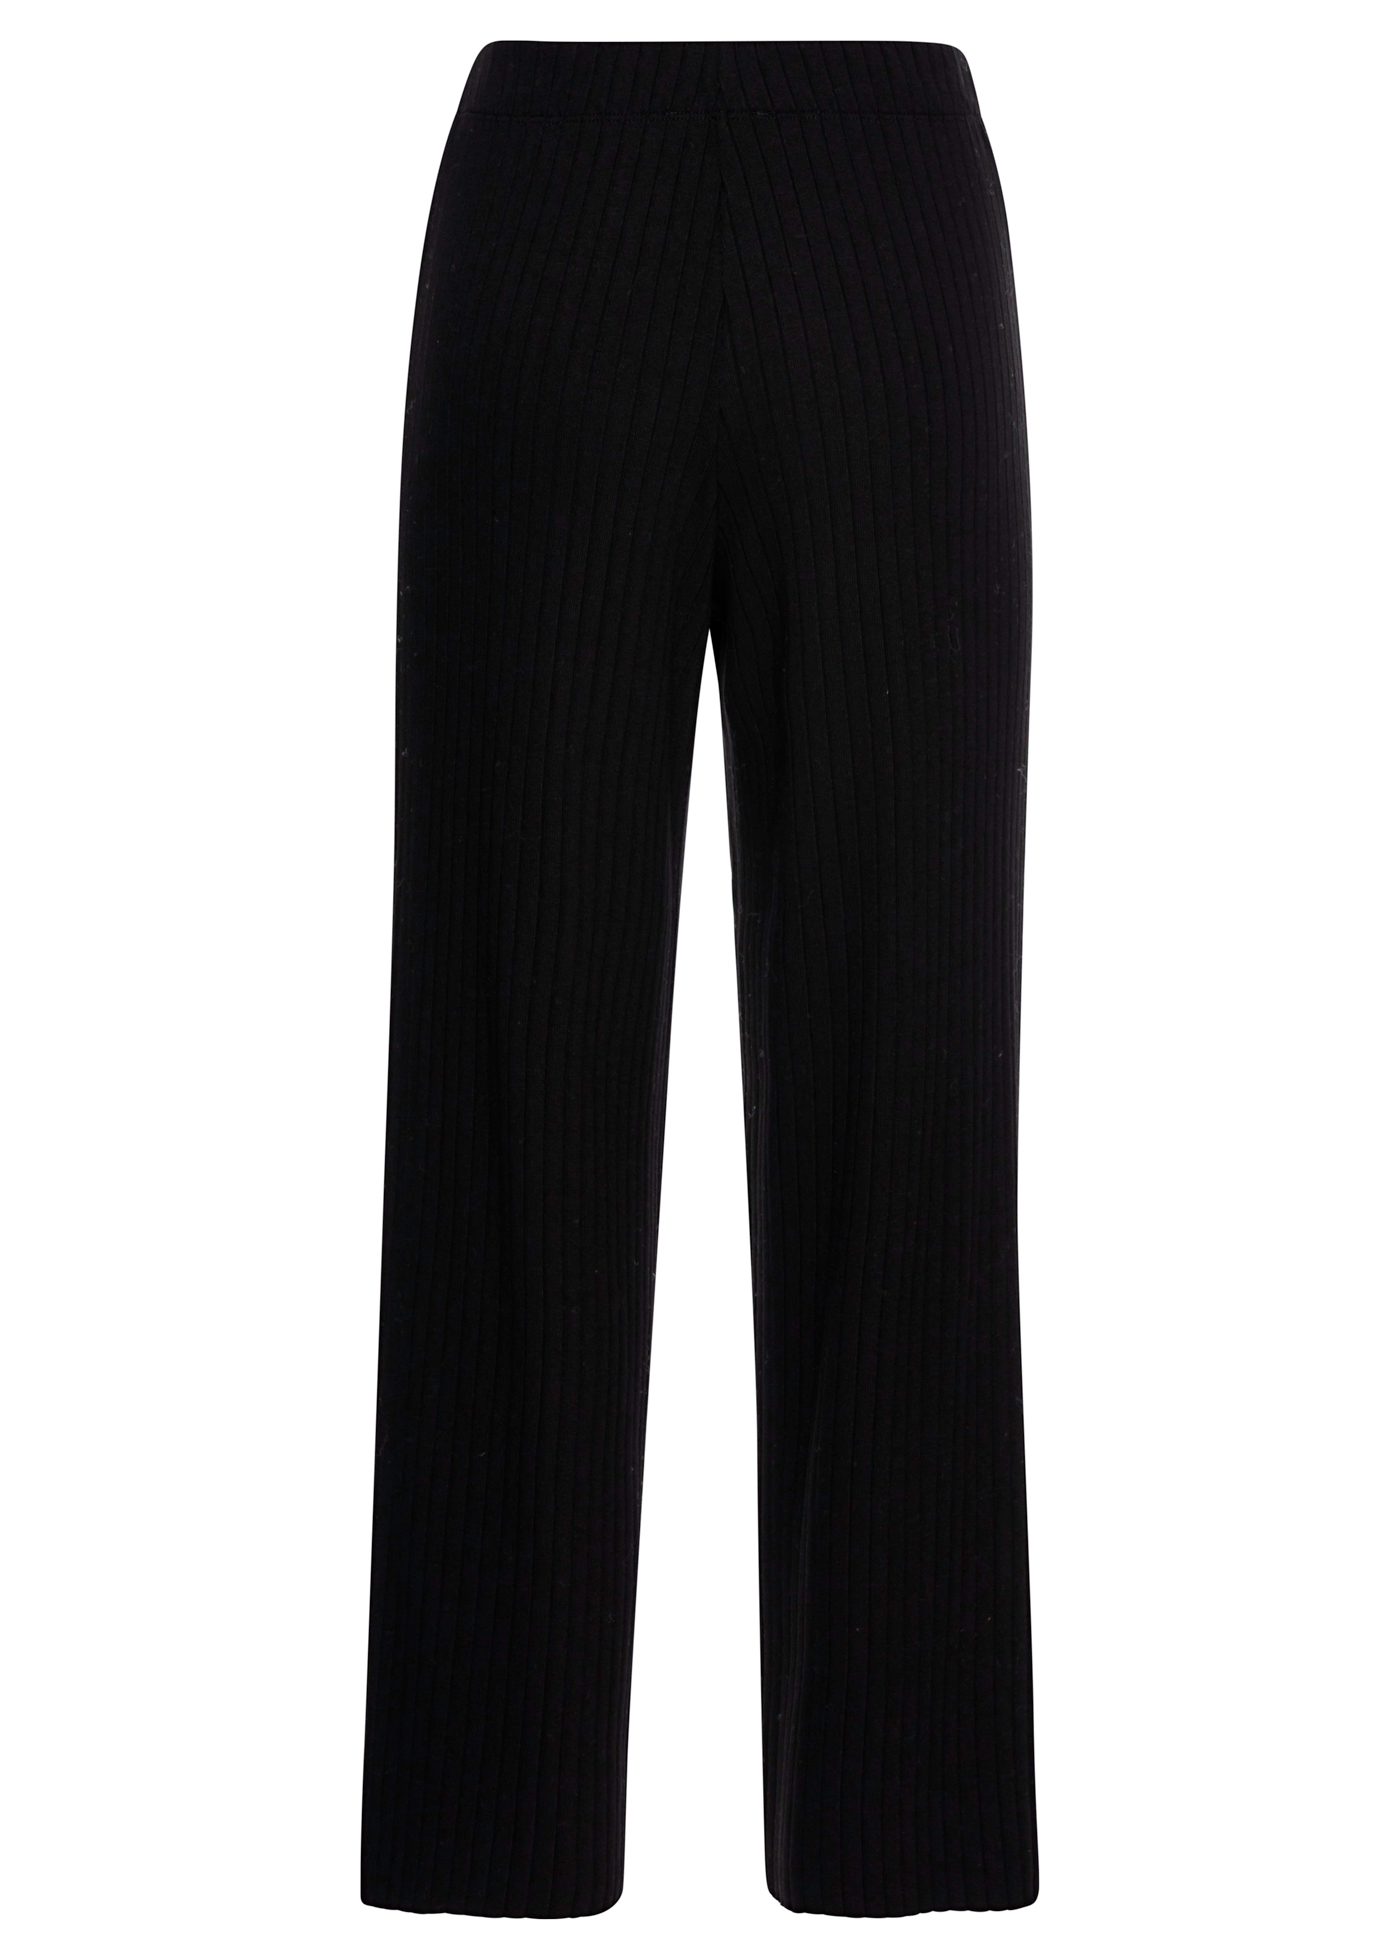 RIBBED CROPPED PANT / RIBBED CROPPED PANT image number 1